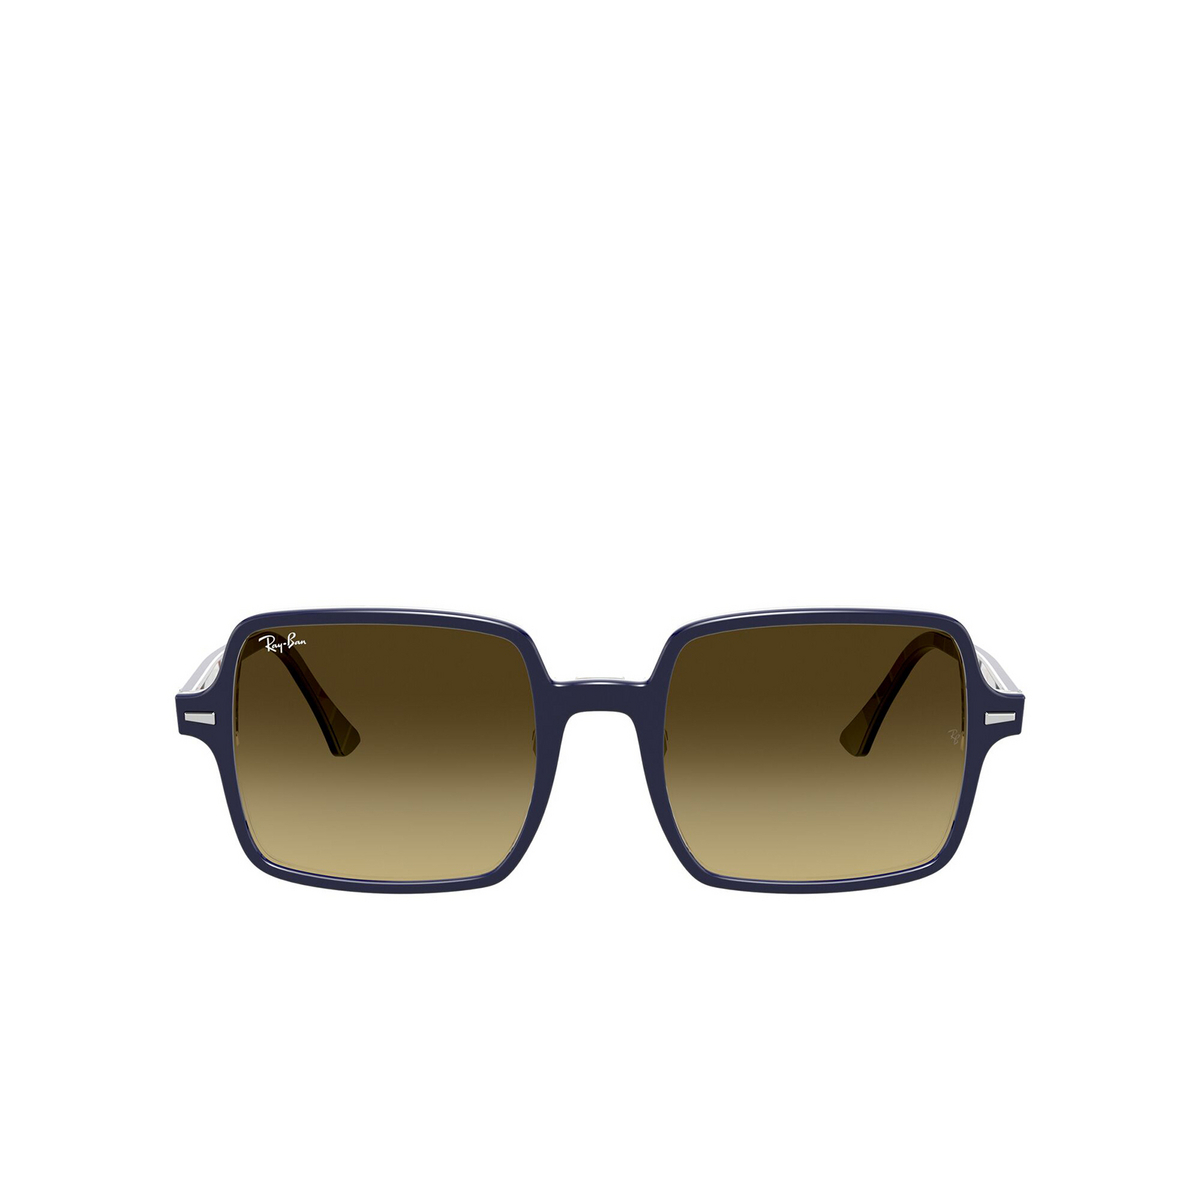 Ray-Ban® Square Sunglasses: Square Ii RB1973 color Blue Stripes 132085 - front view.